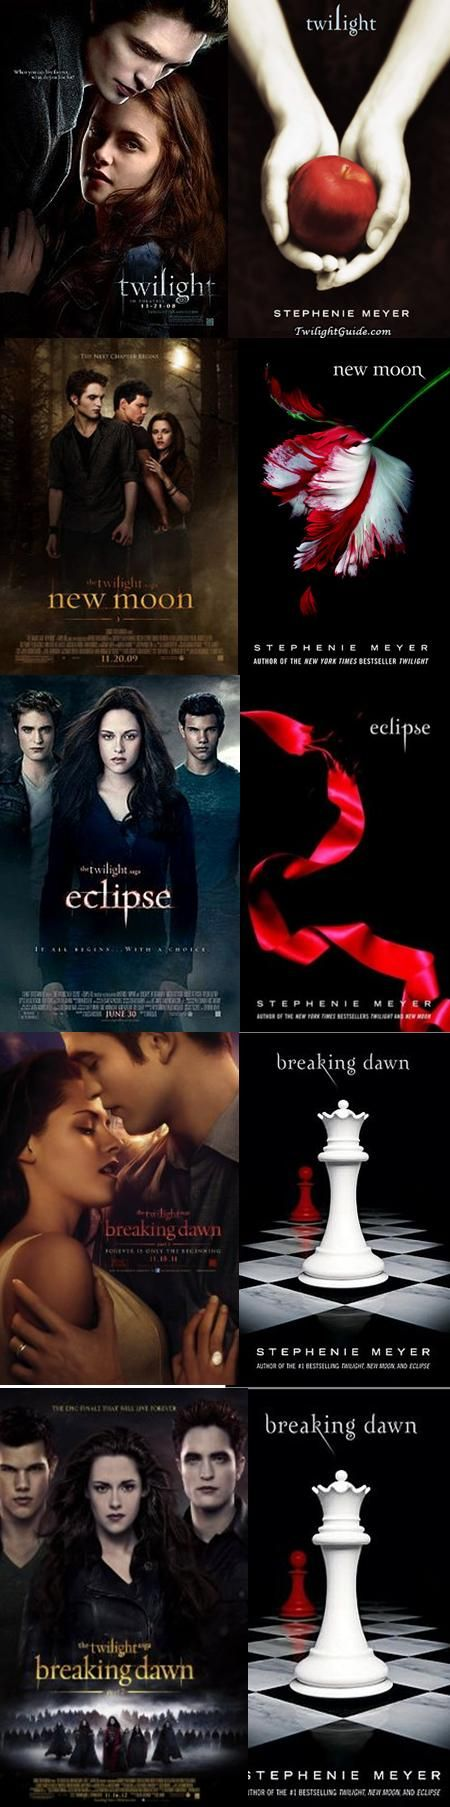 The Twilight Saga by Stephanie Meyer. When seventeen-year-old Bella leaves Phoenix to live with her father in Forks, Washington, she meets an exquisitely handsome boy at school for whom she feels an overwhelming attraction and who she comes to realize is not wholly human.